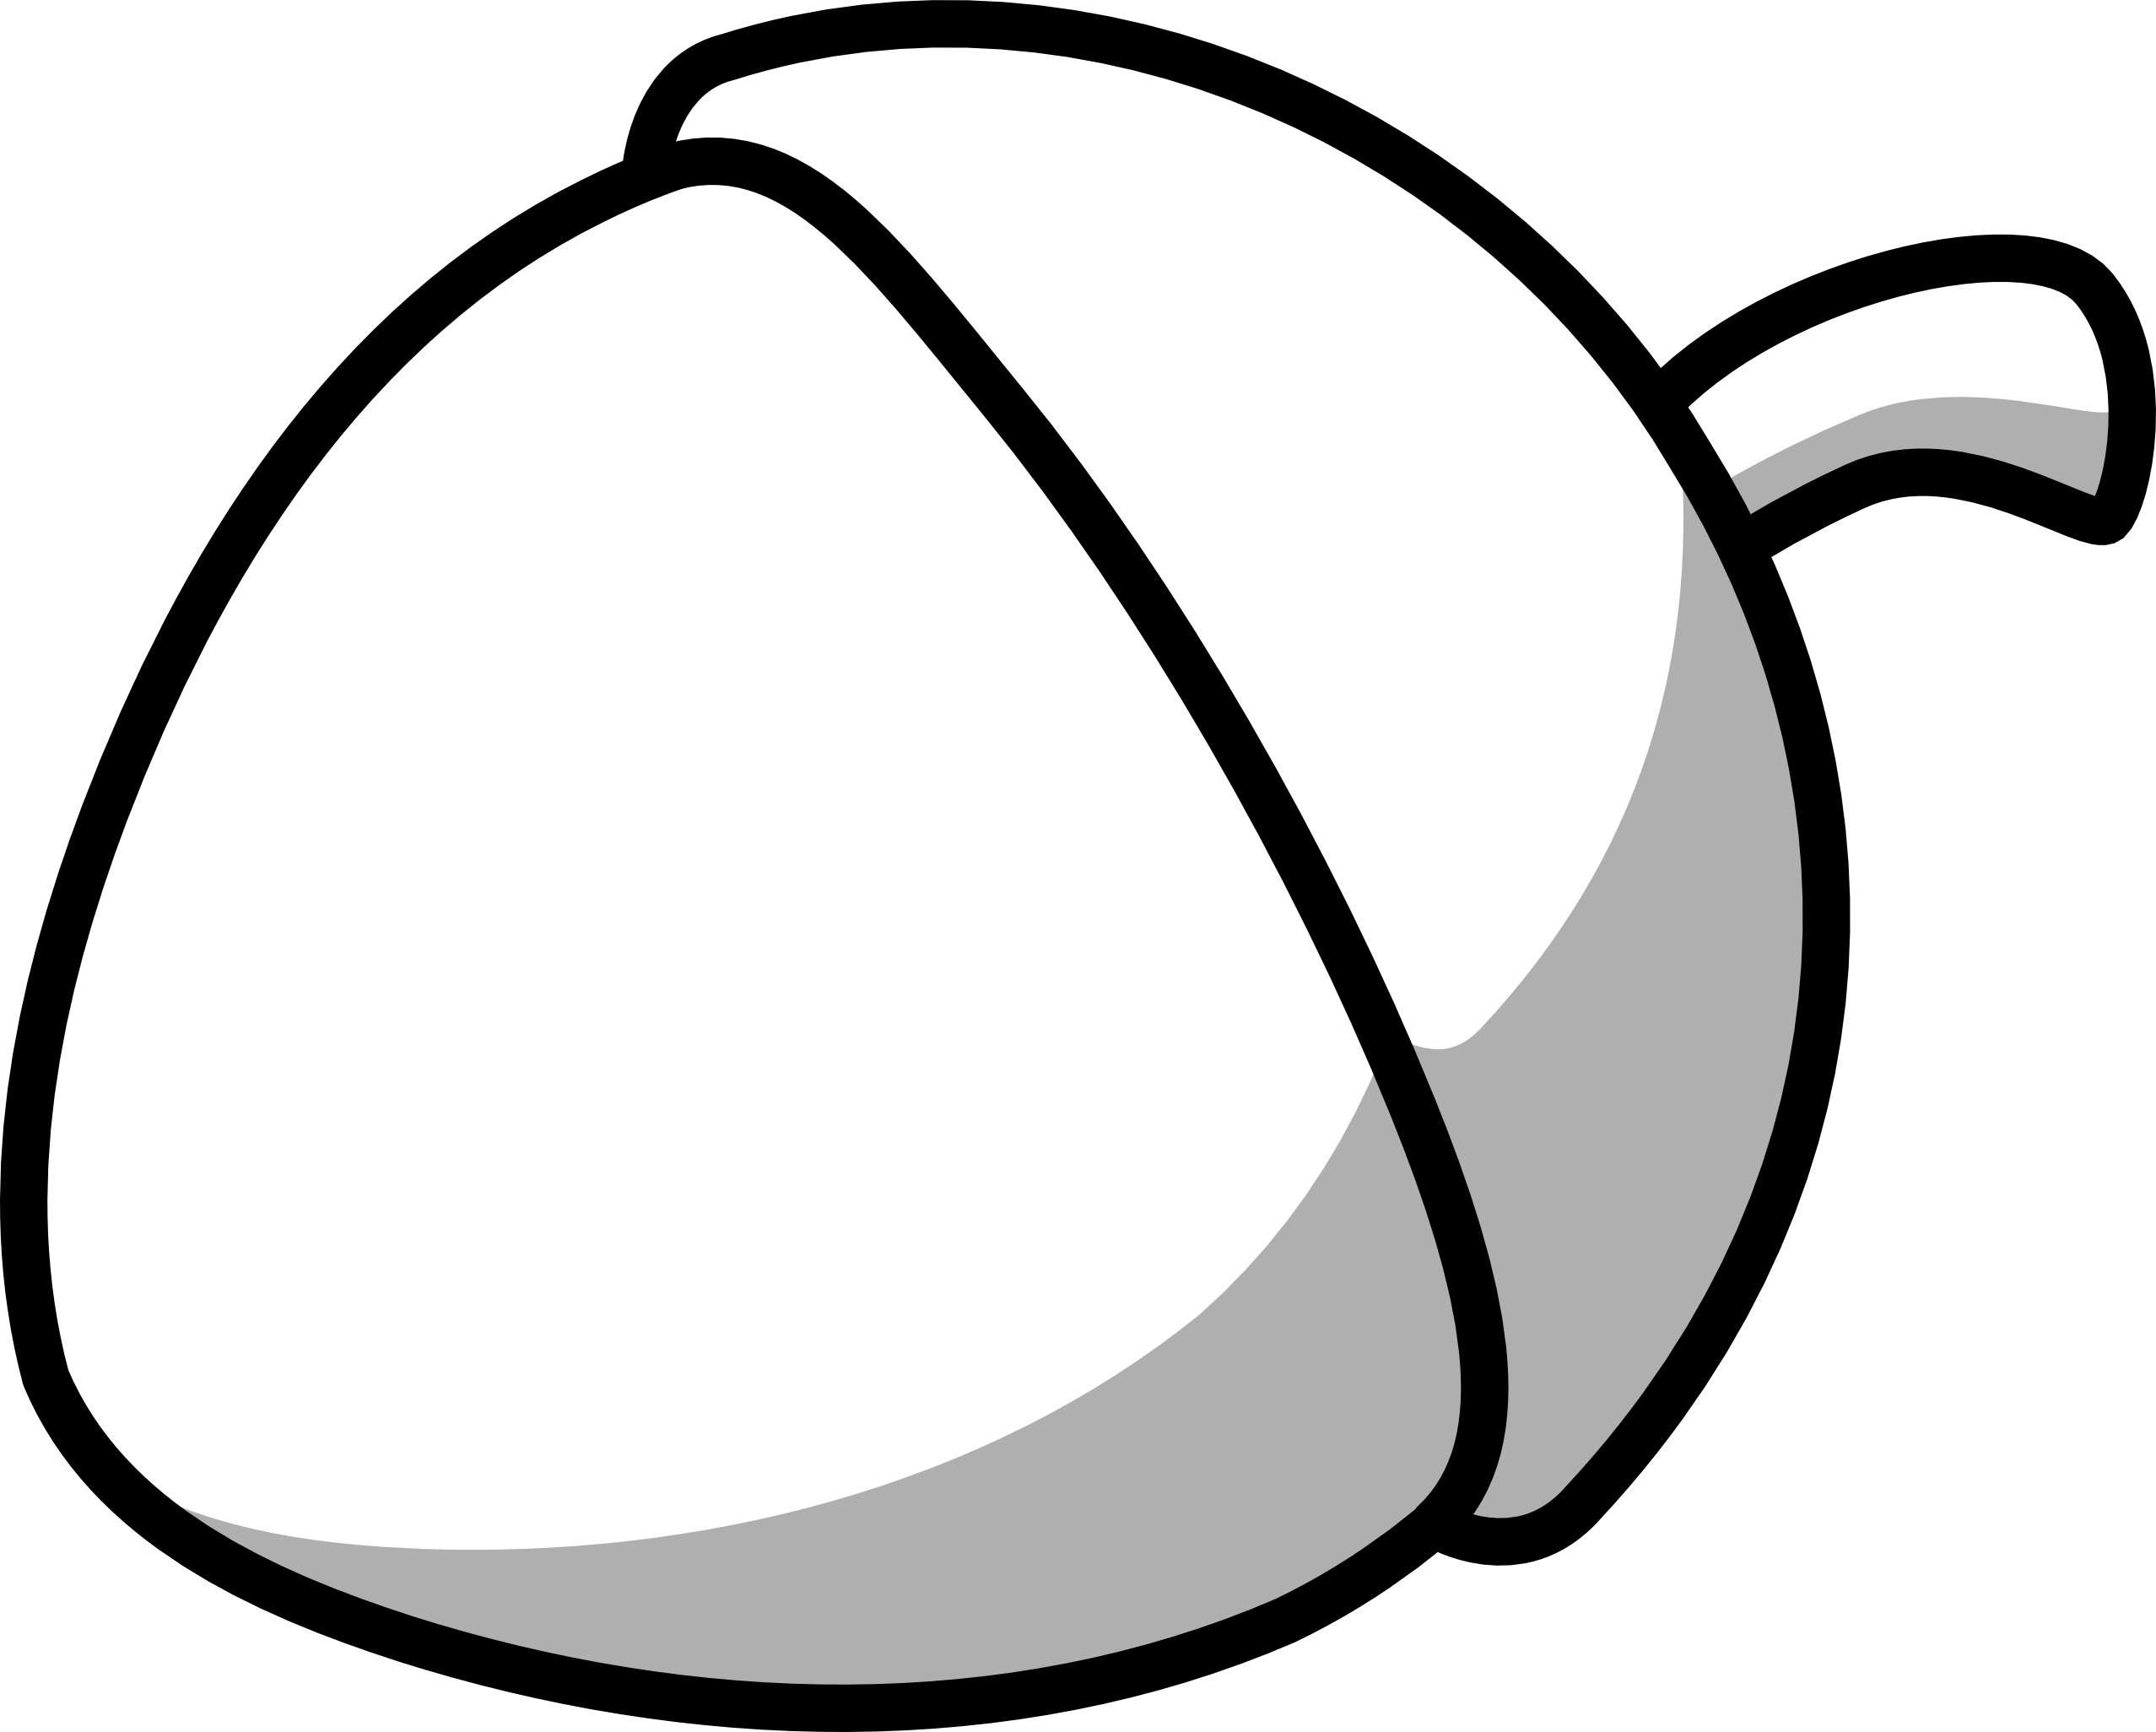 large acorn clip art black and white high quality coloring pages